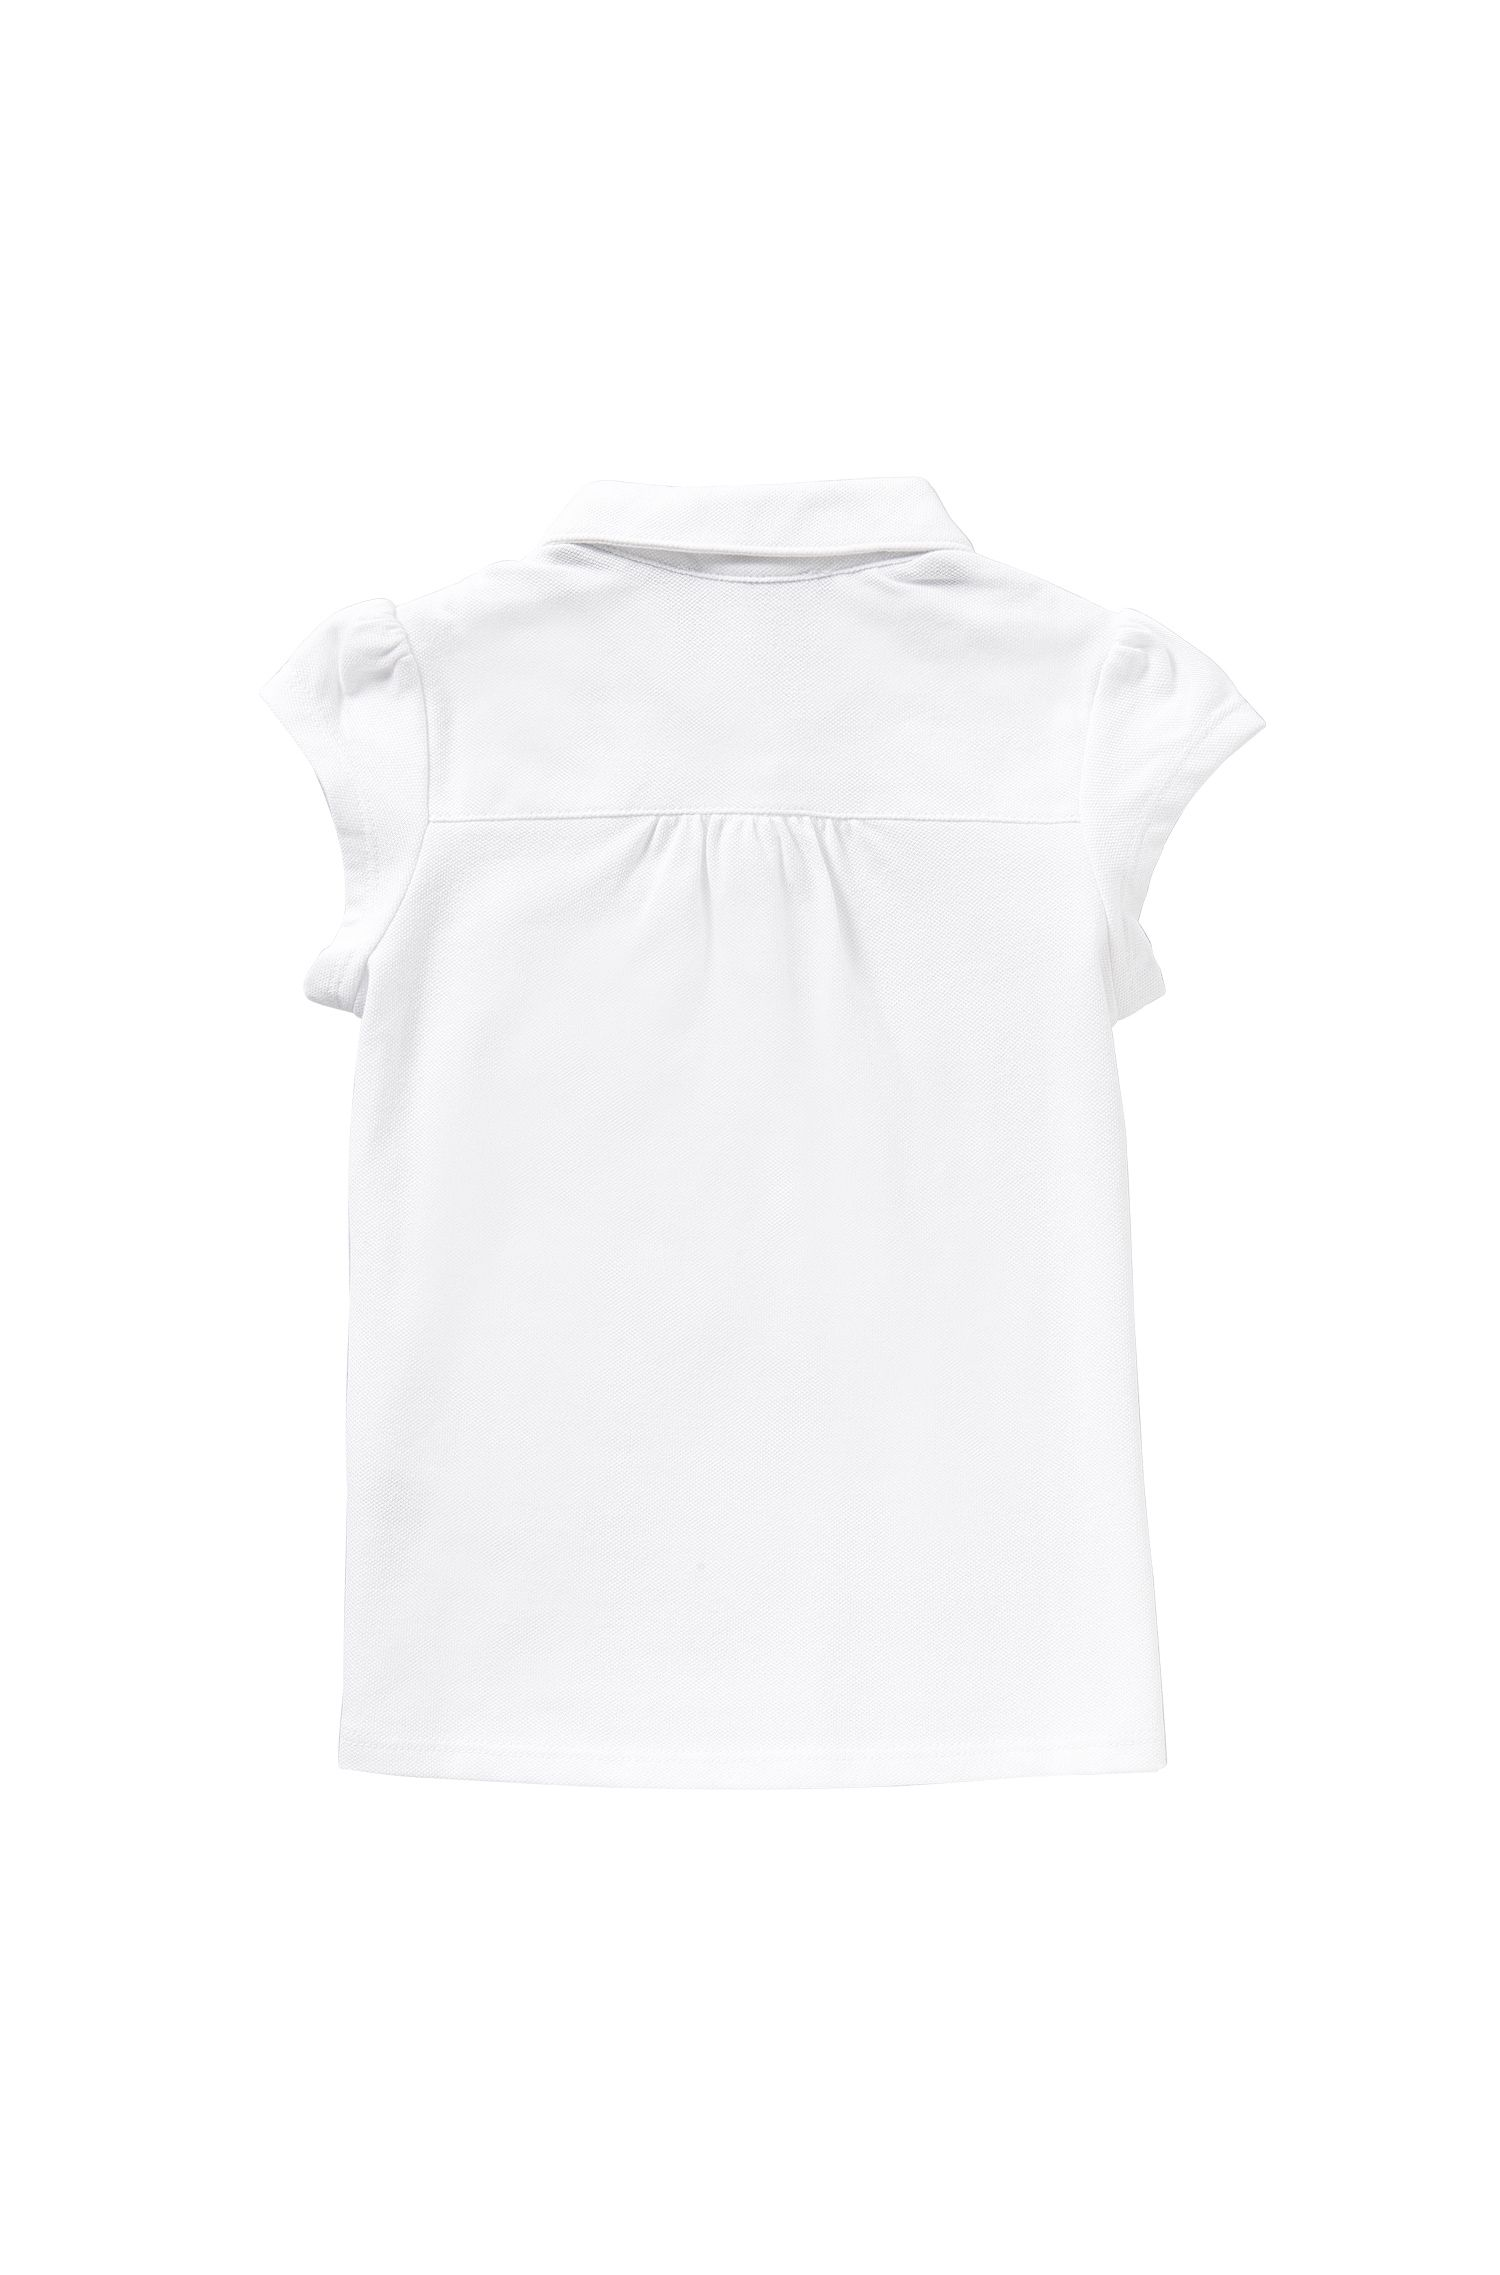 Kids' polo shirt in stretch cotton with a patch breast pocket: 'J15343'